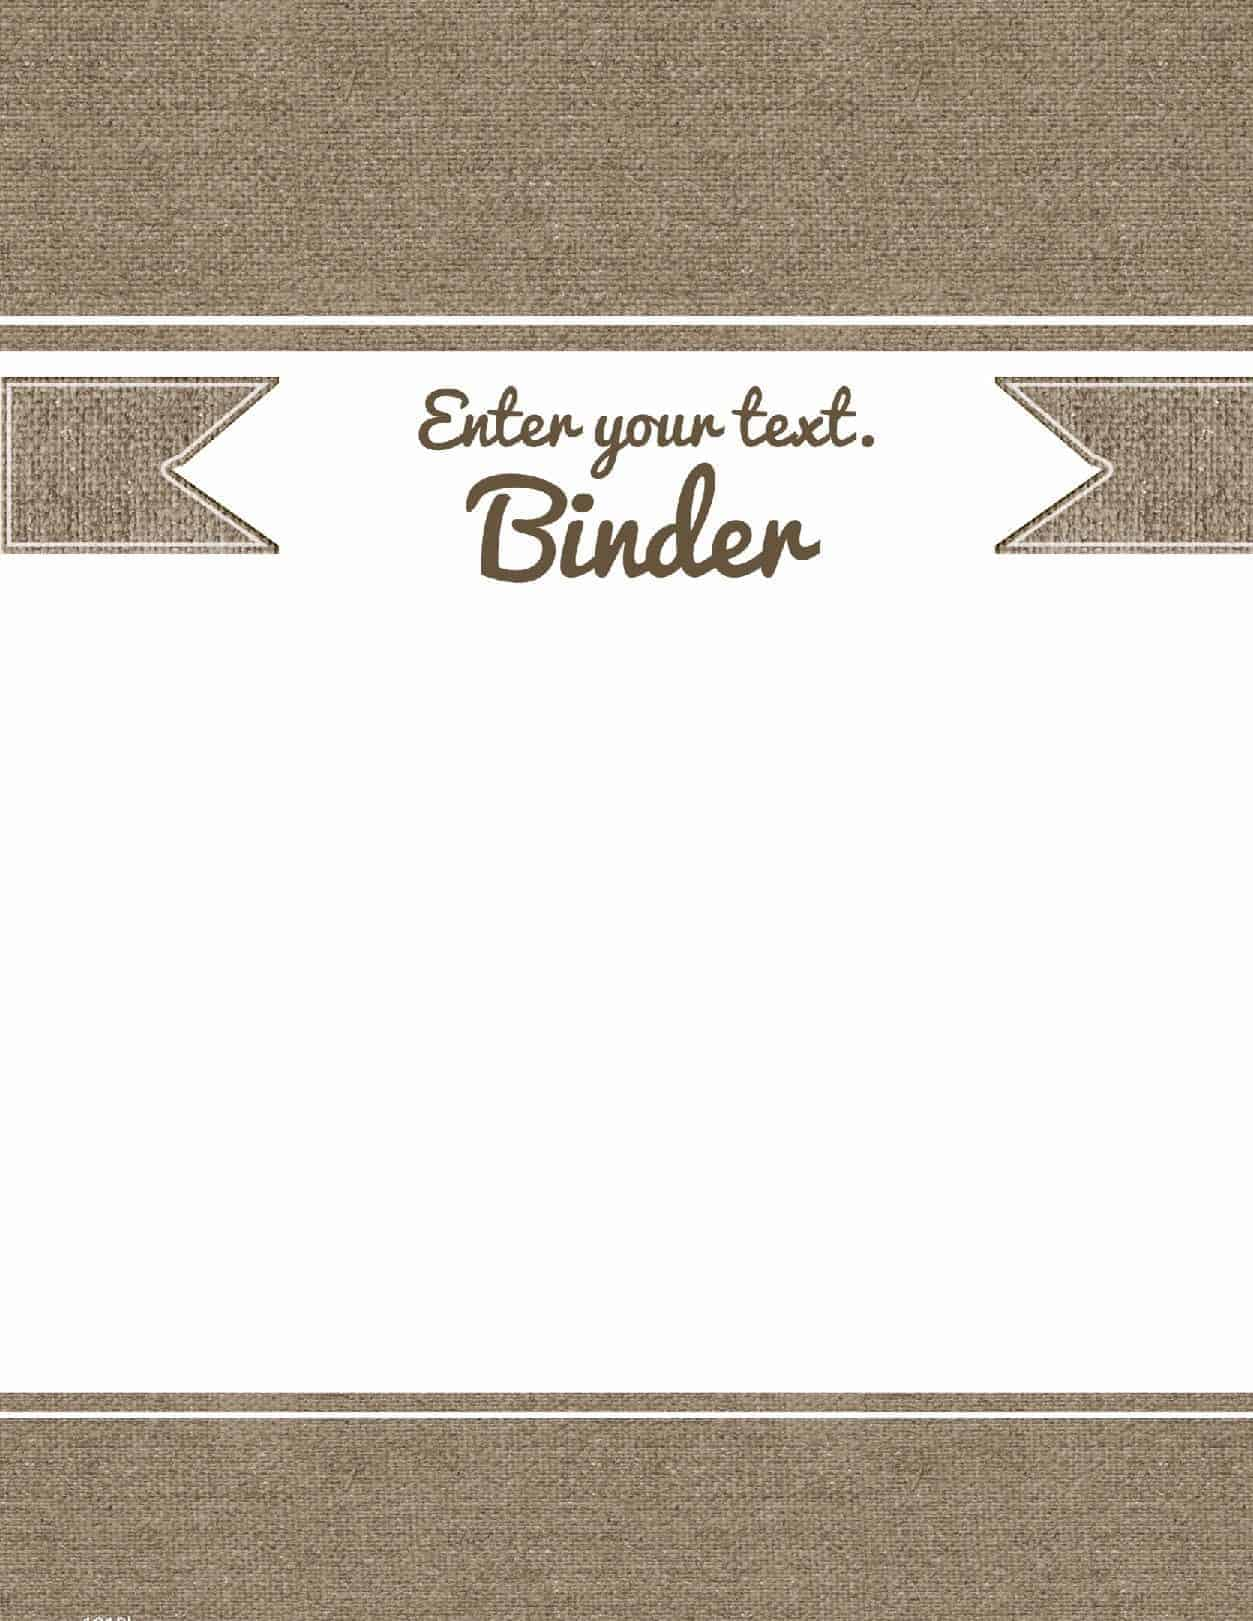 graphic regarding Printable Binder Covers Free titled Absolutely free Binder Deal with Templates Personalize On the web Print at